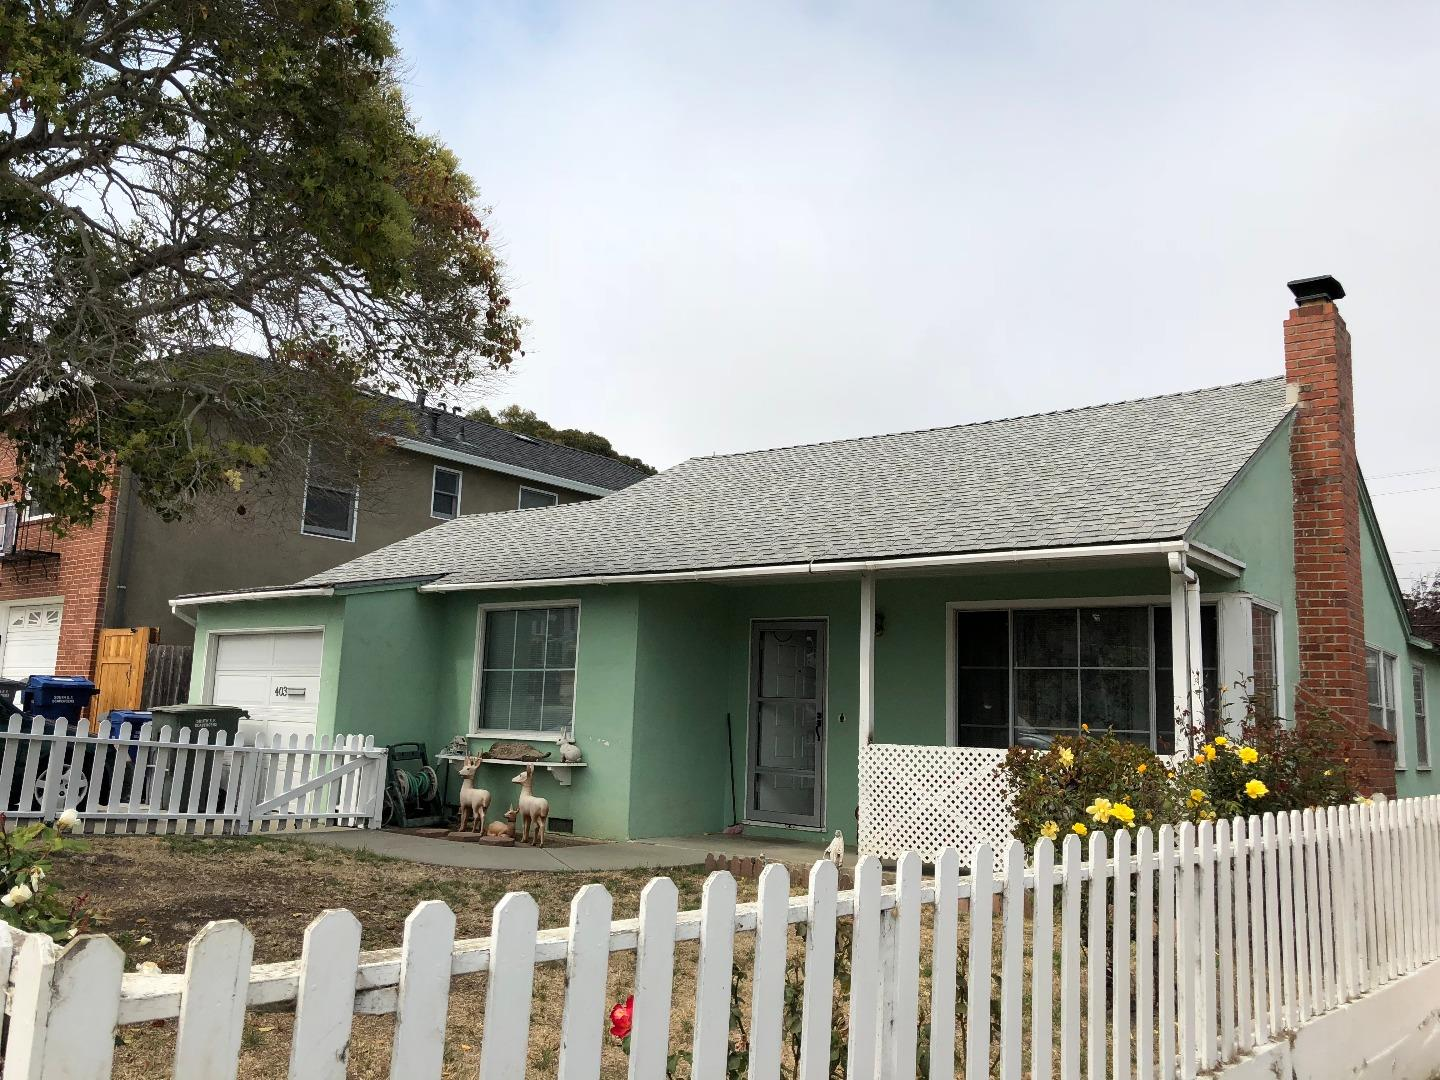 403 Fairway Drive South San Francisco, CA 94080 - MLS #: ML81718538